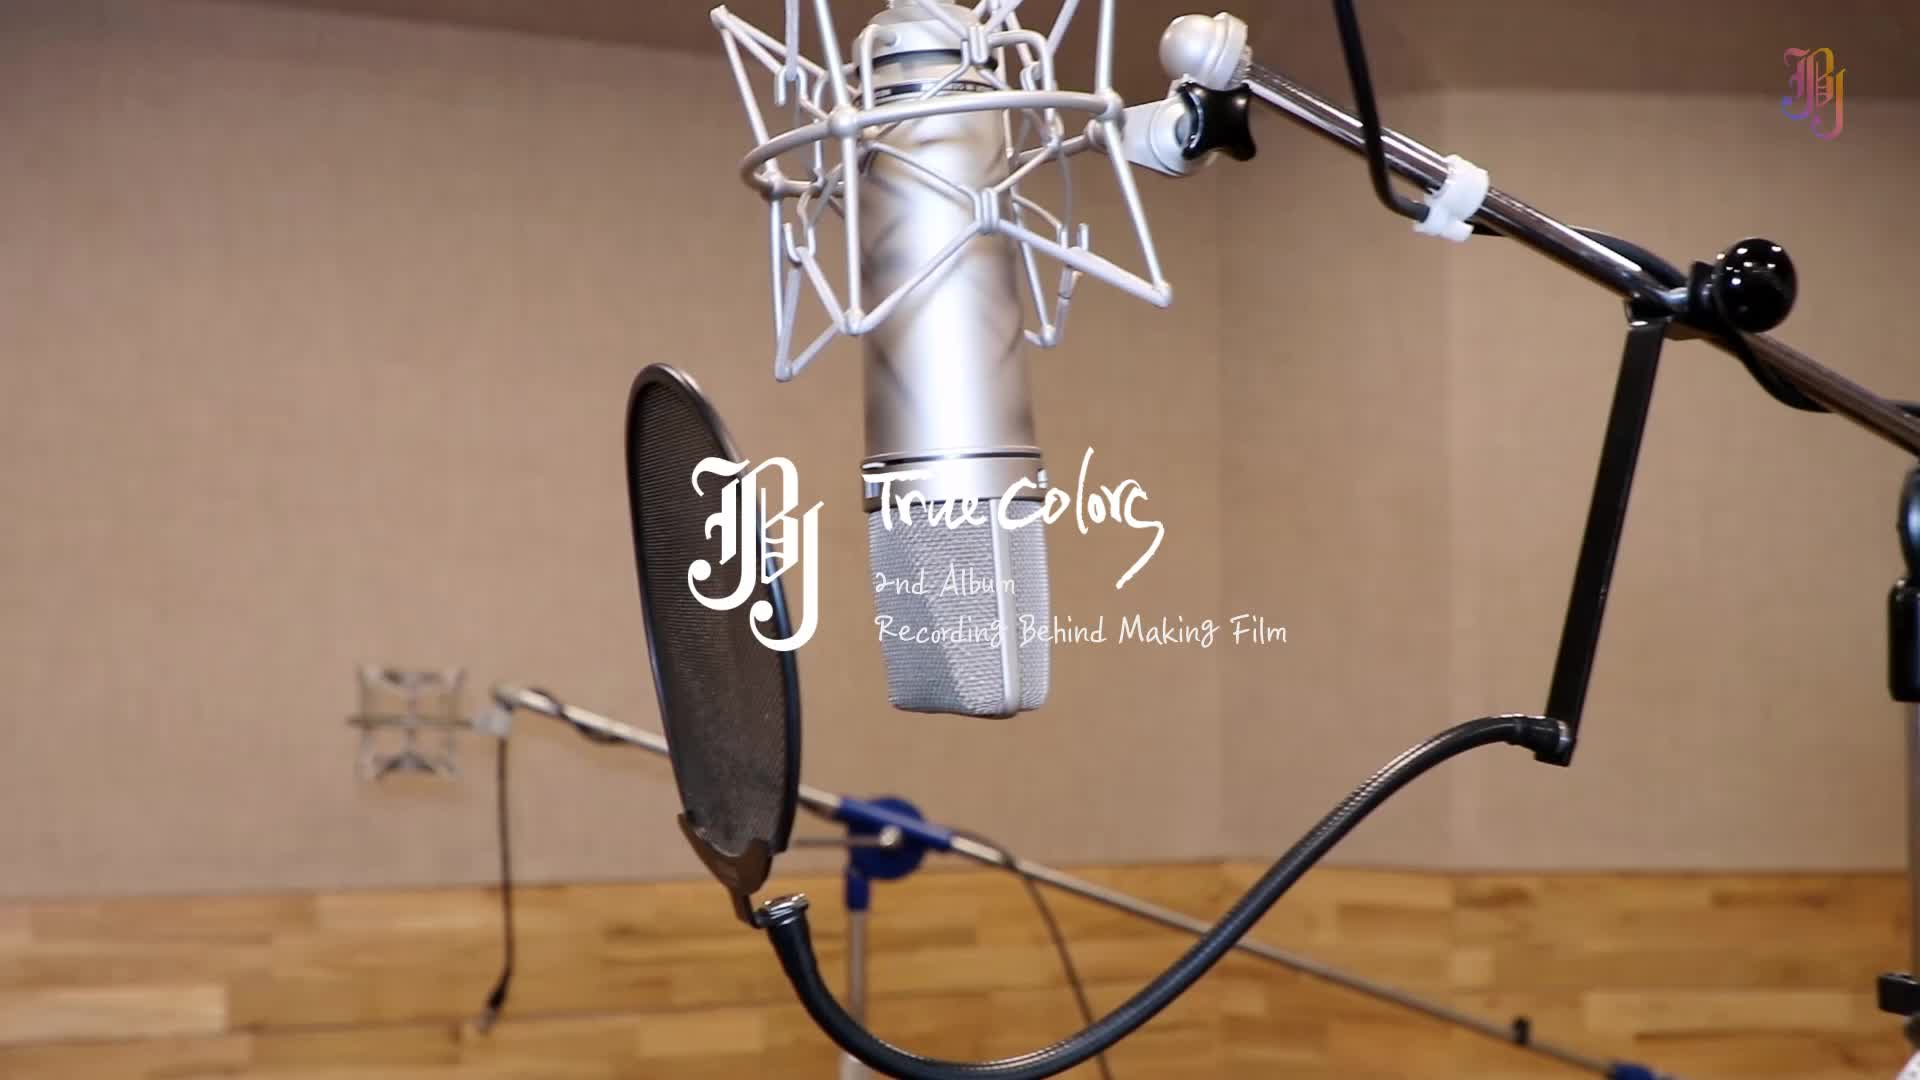 JBJ - '꽃이야(MY FLOWER)' Recording Making Fiilm